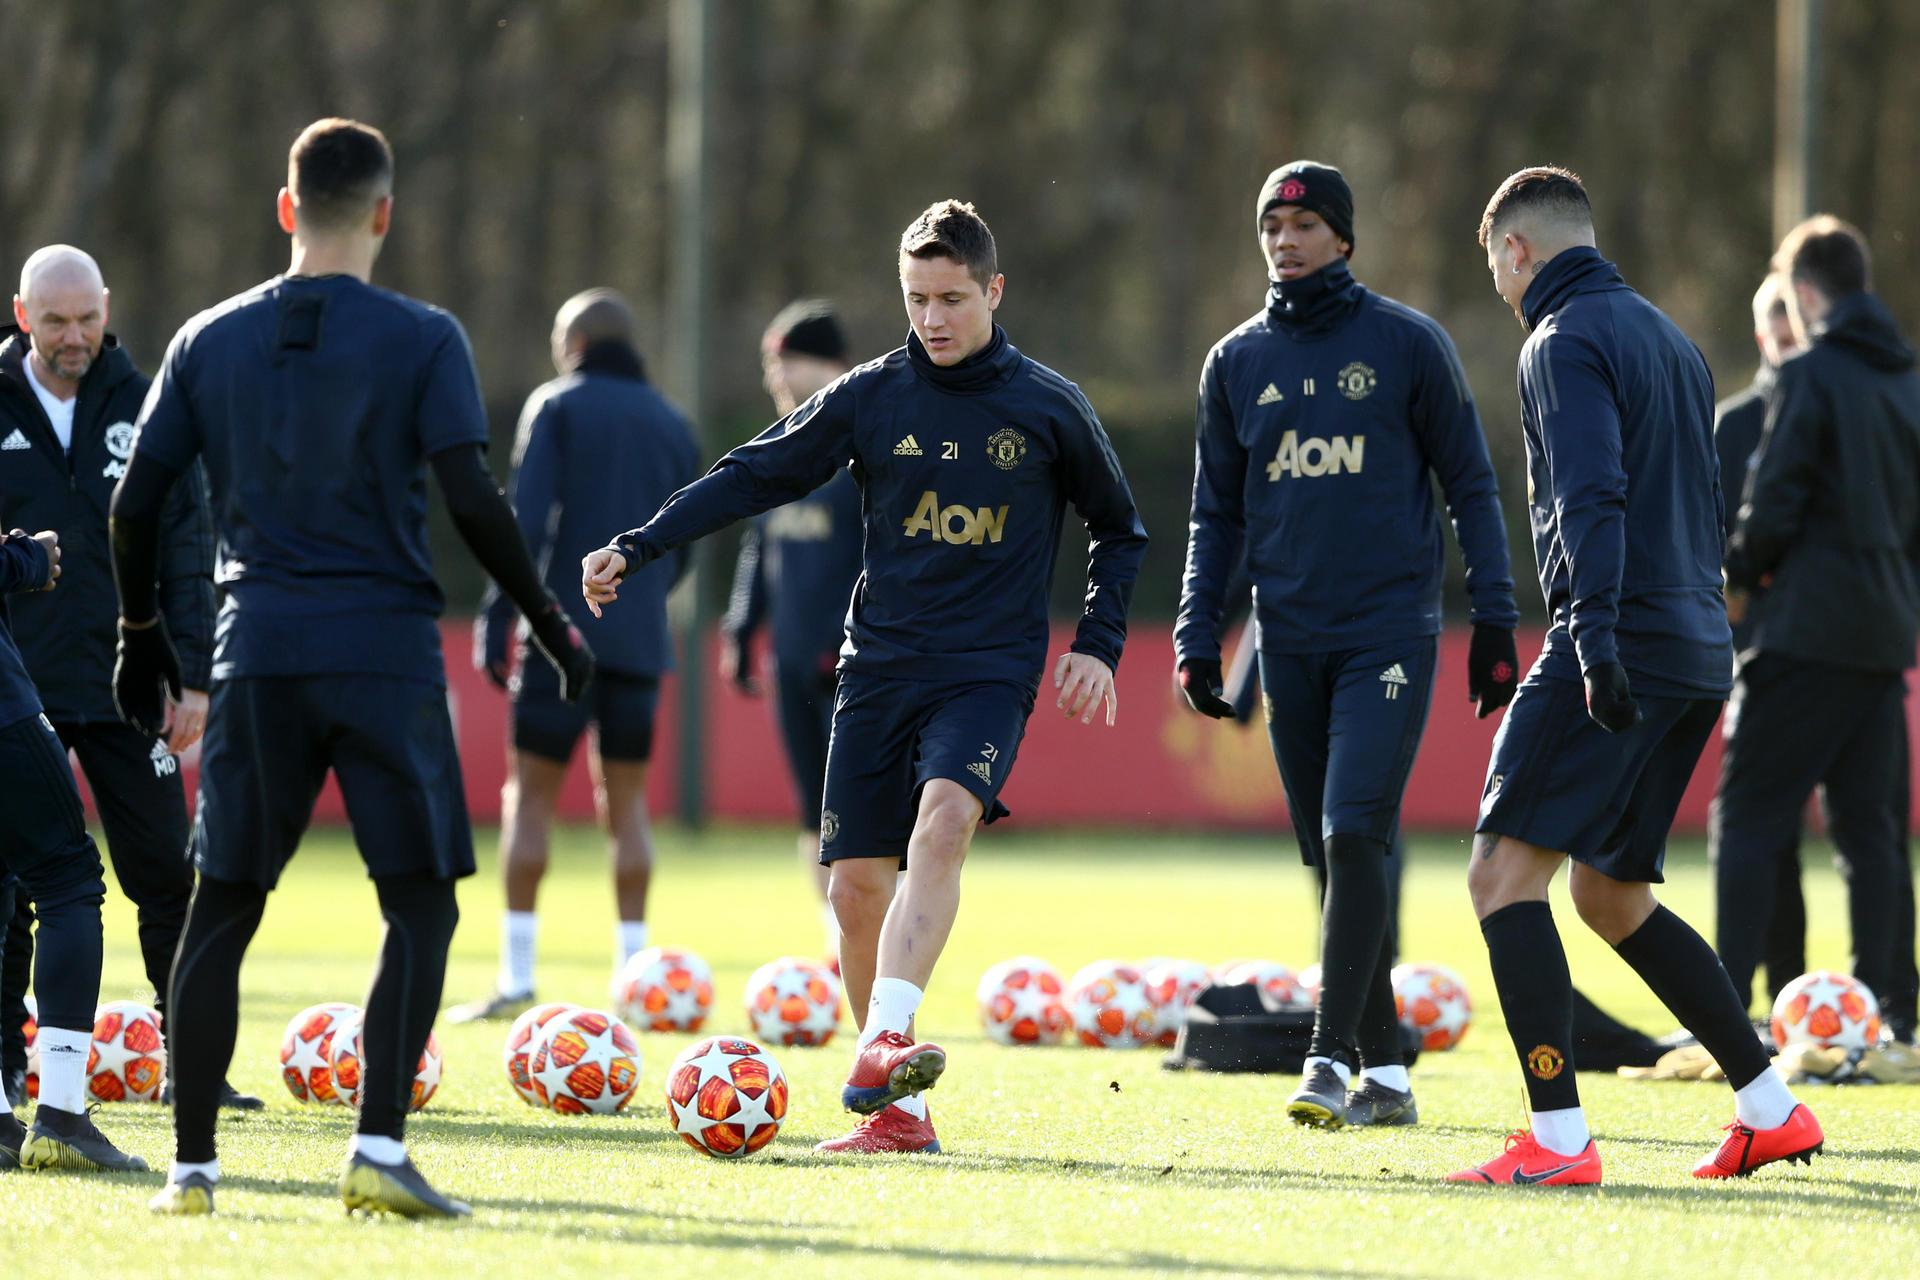 United players in training.